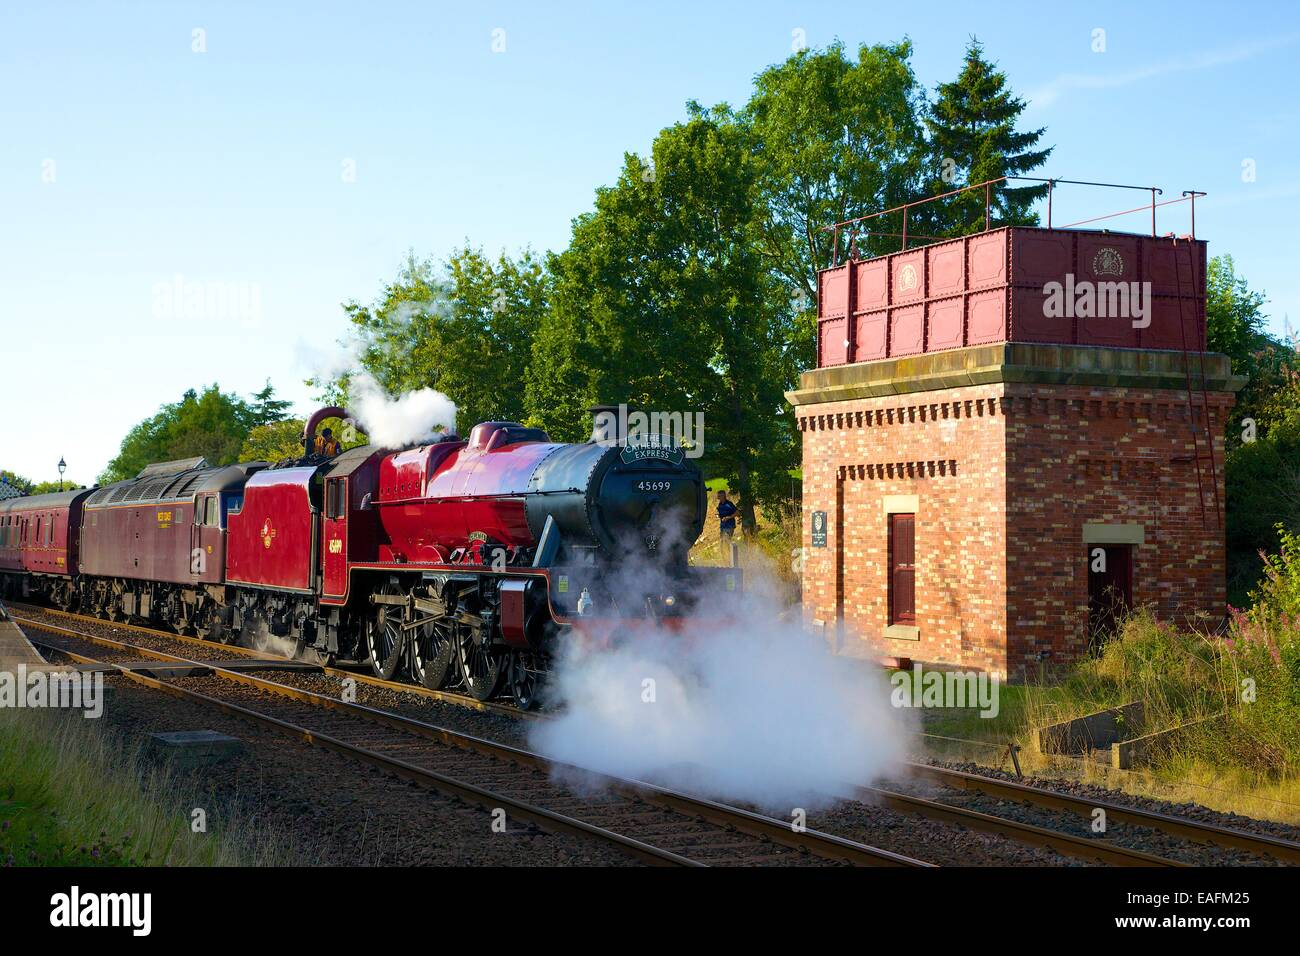 Steam train the Galatea at Appleby Station, Appleby-in-Westmorland, Cumbria, Settle to Carlisle Railway Line, England, - Stock Image